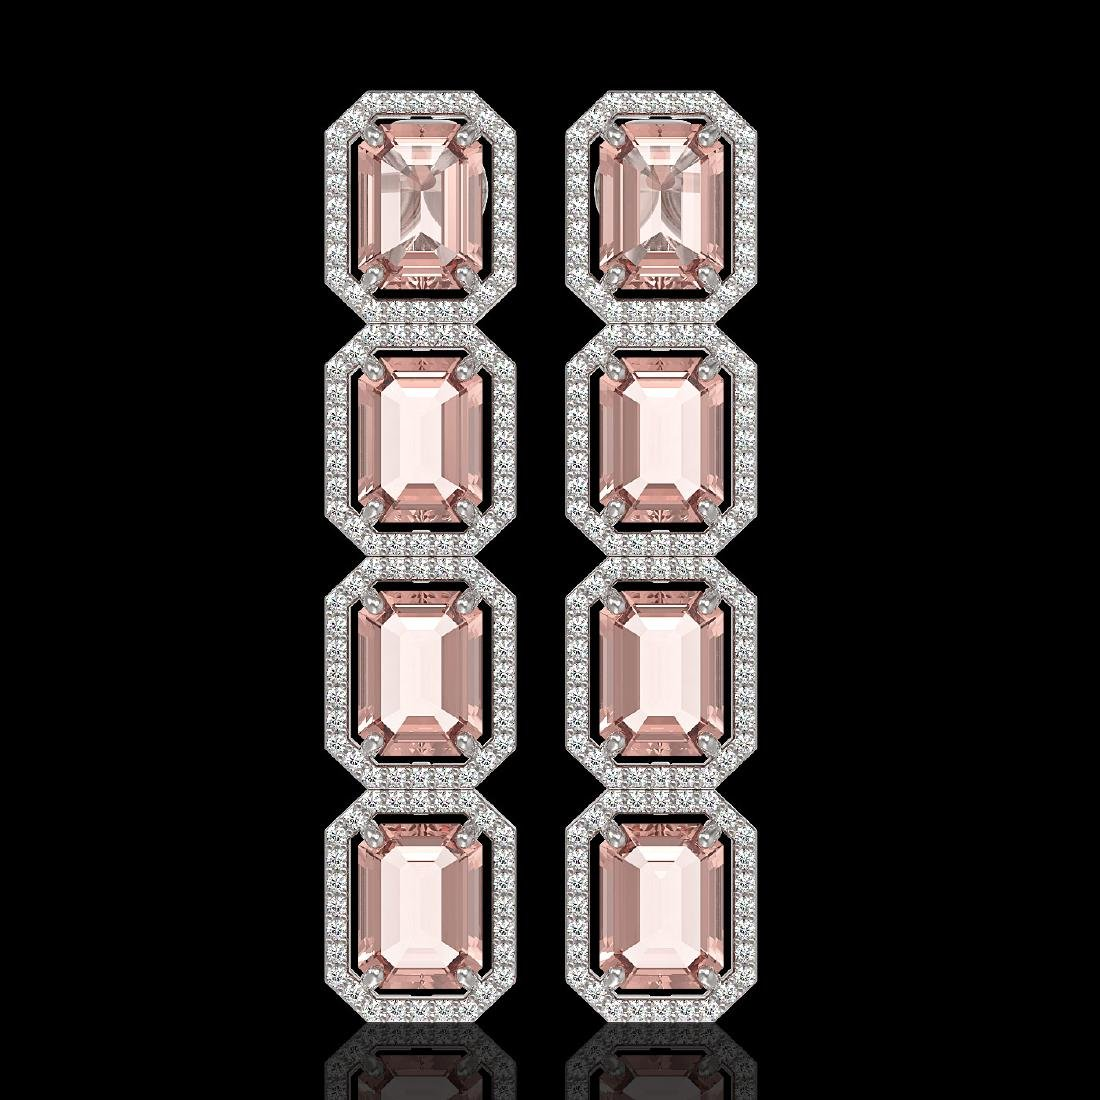 19.81 CTW Morganite & Diamond Halo Earrings 10K White